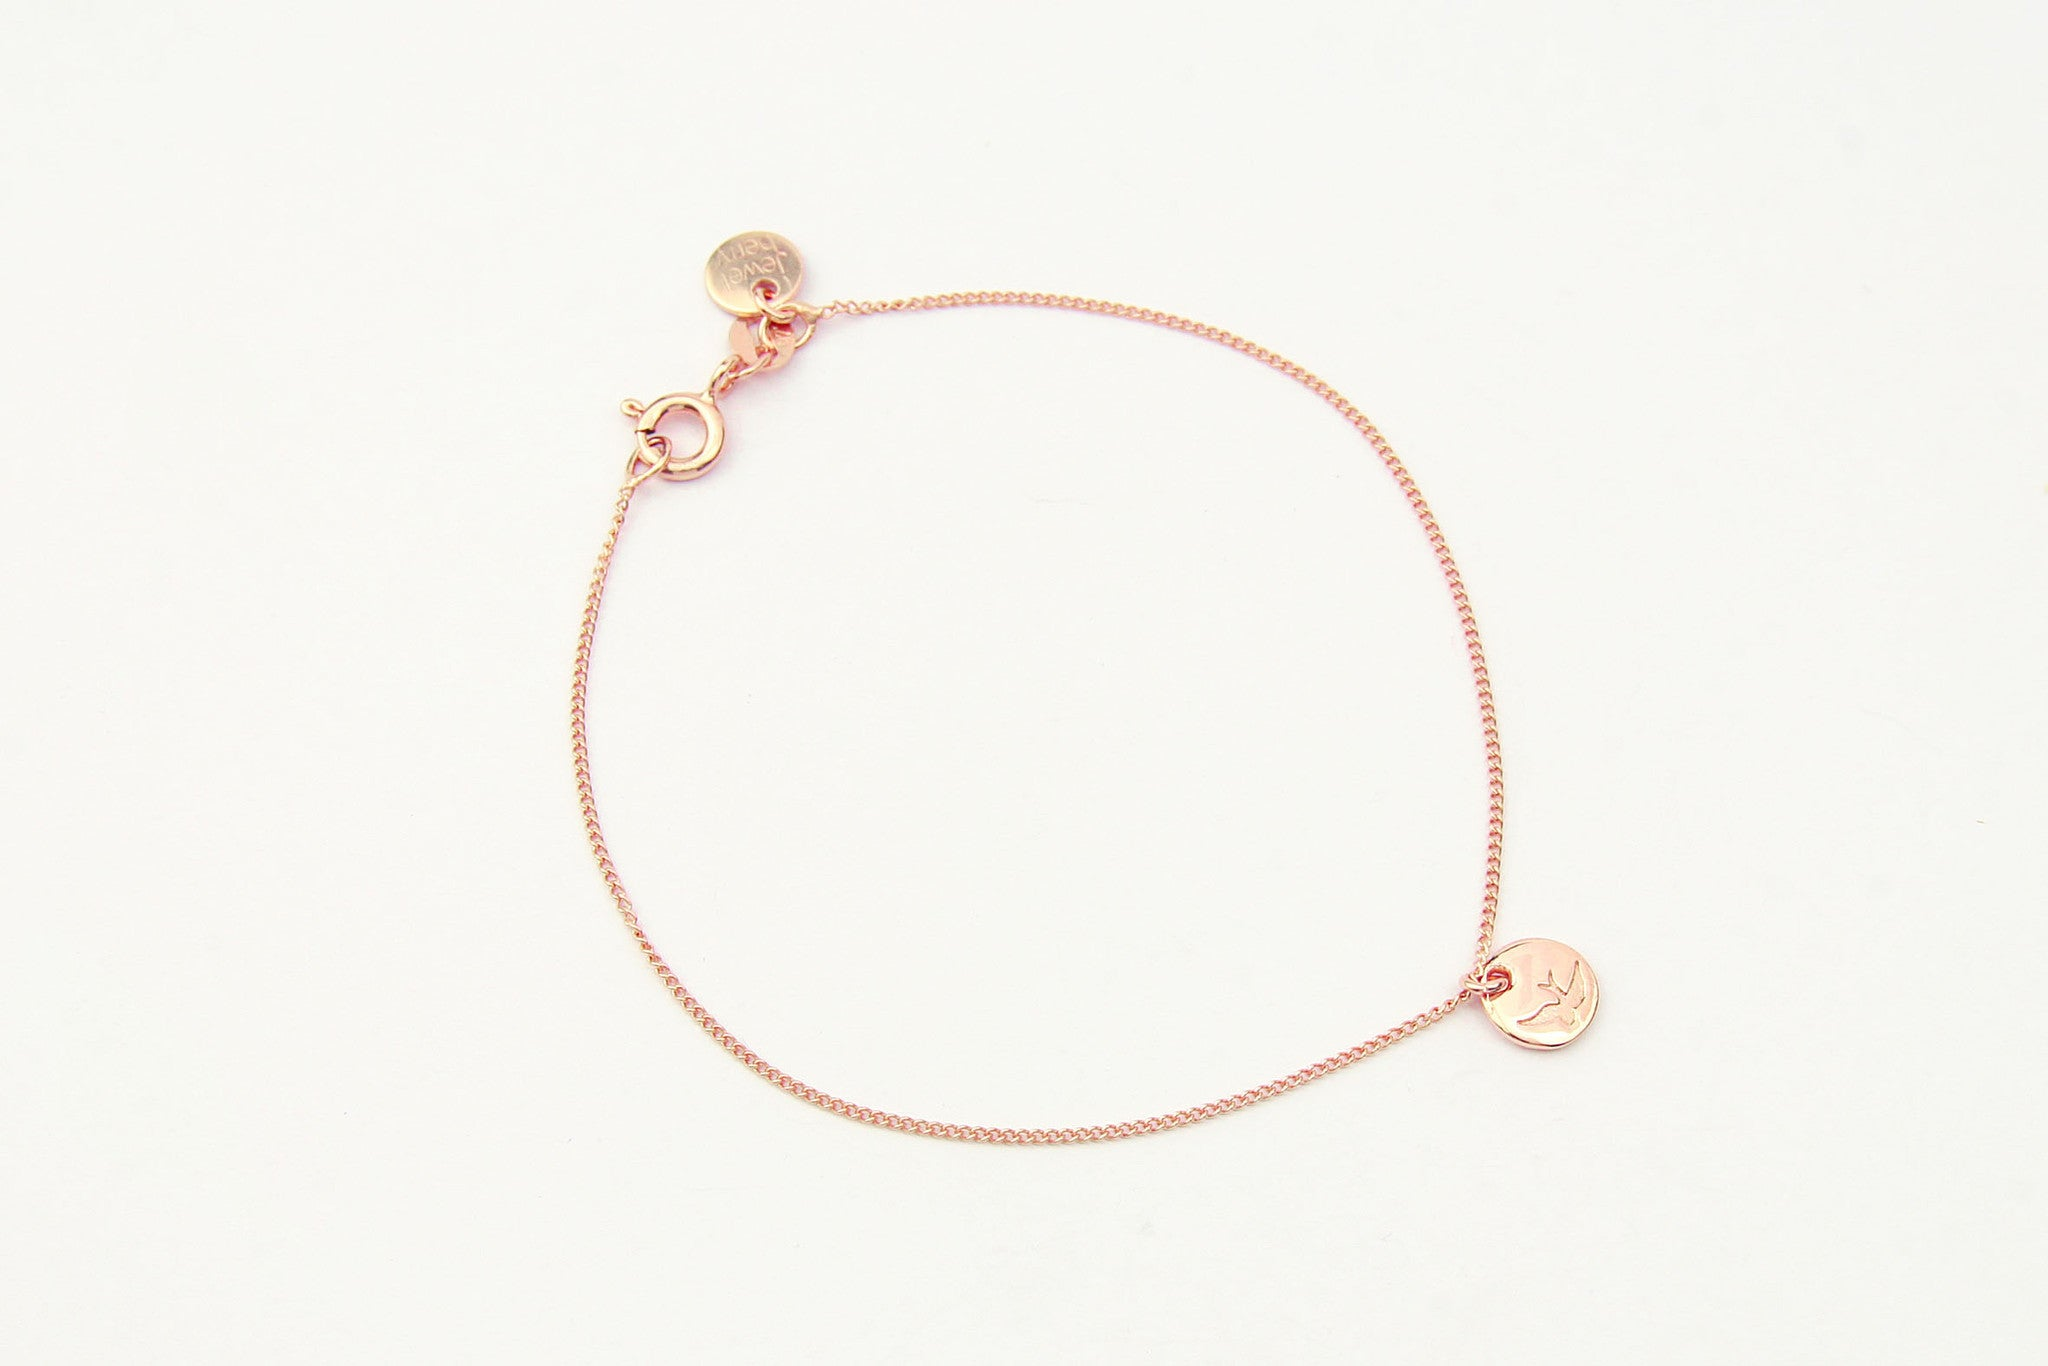 jewelberry armband bracelet bird token rose gold plated sterling silver fine jewelry handmade with love fairtrade curb chain